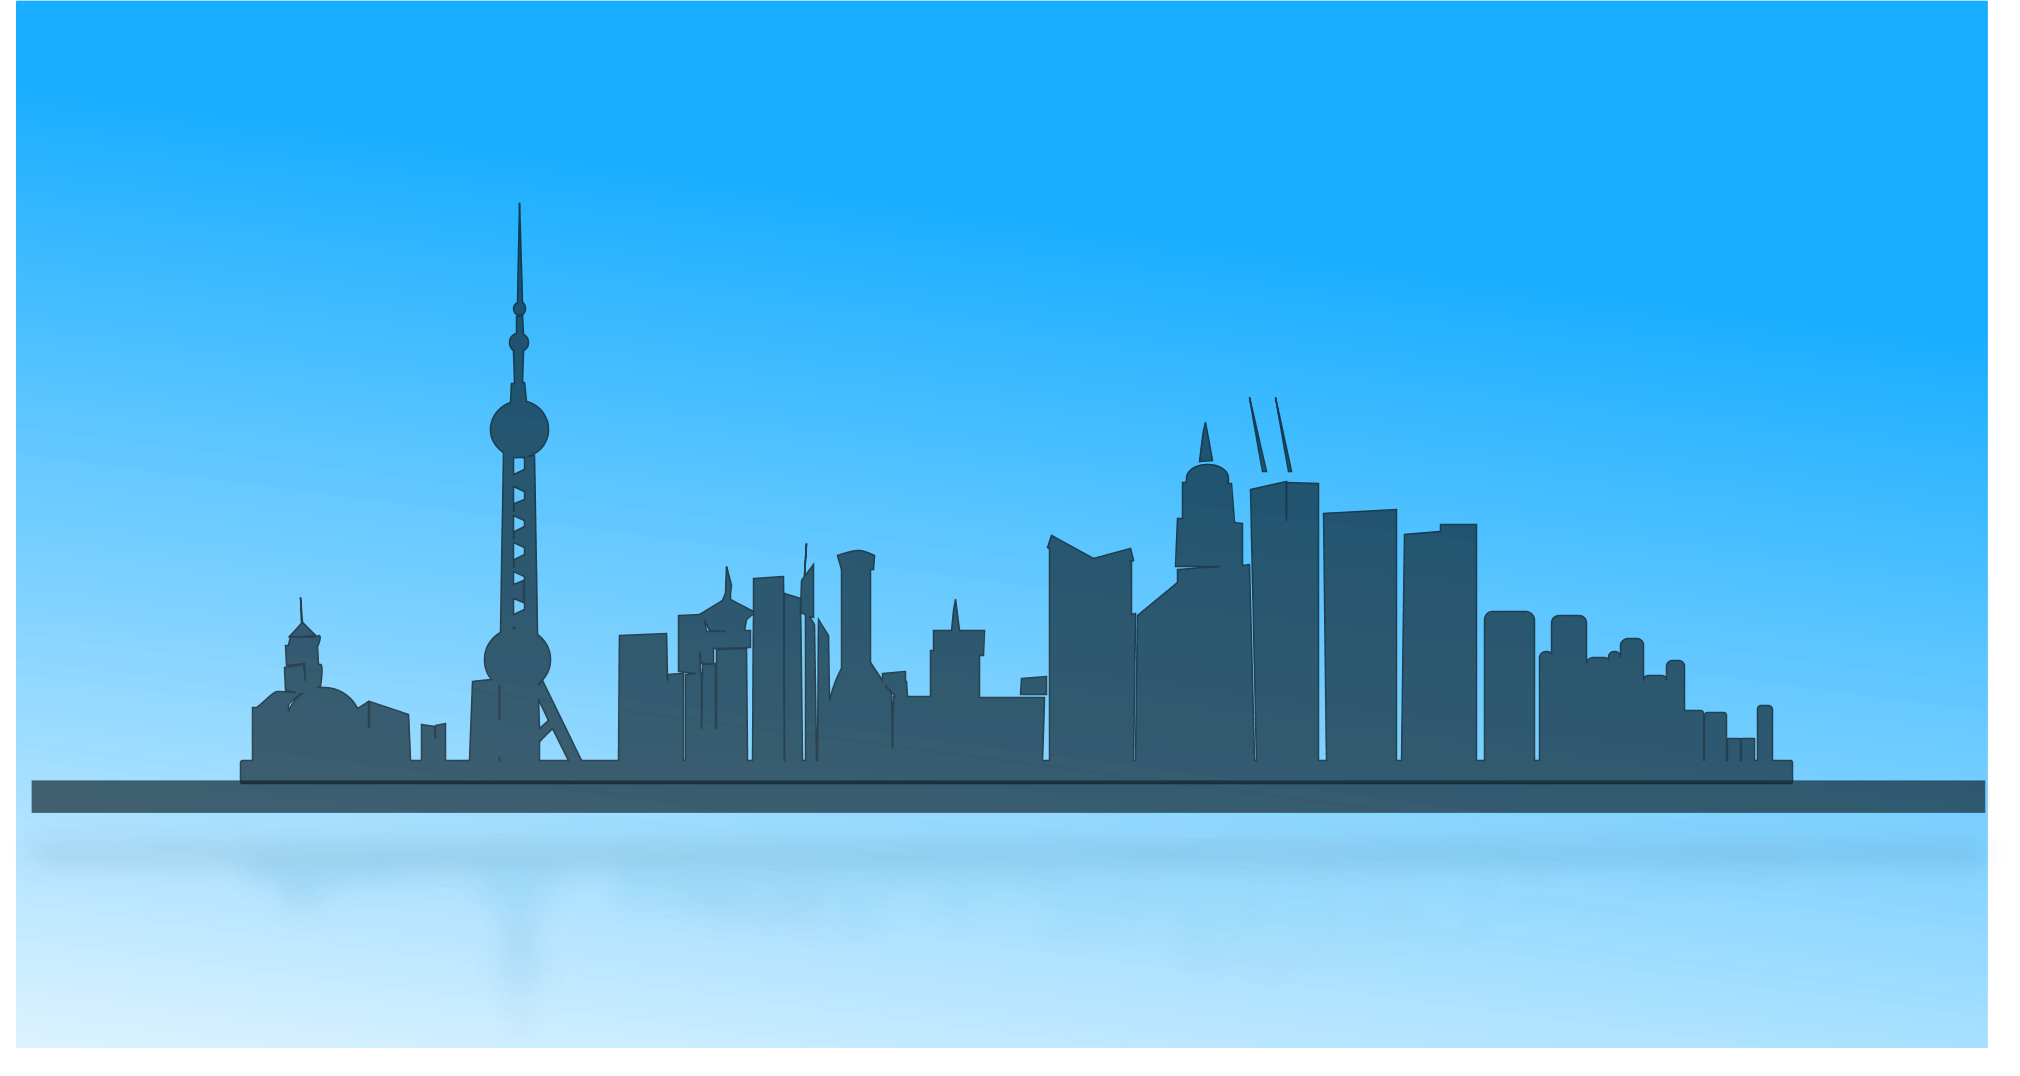 City clipart #4, Download drawings